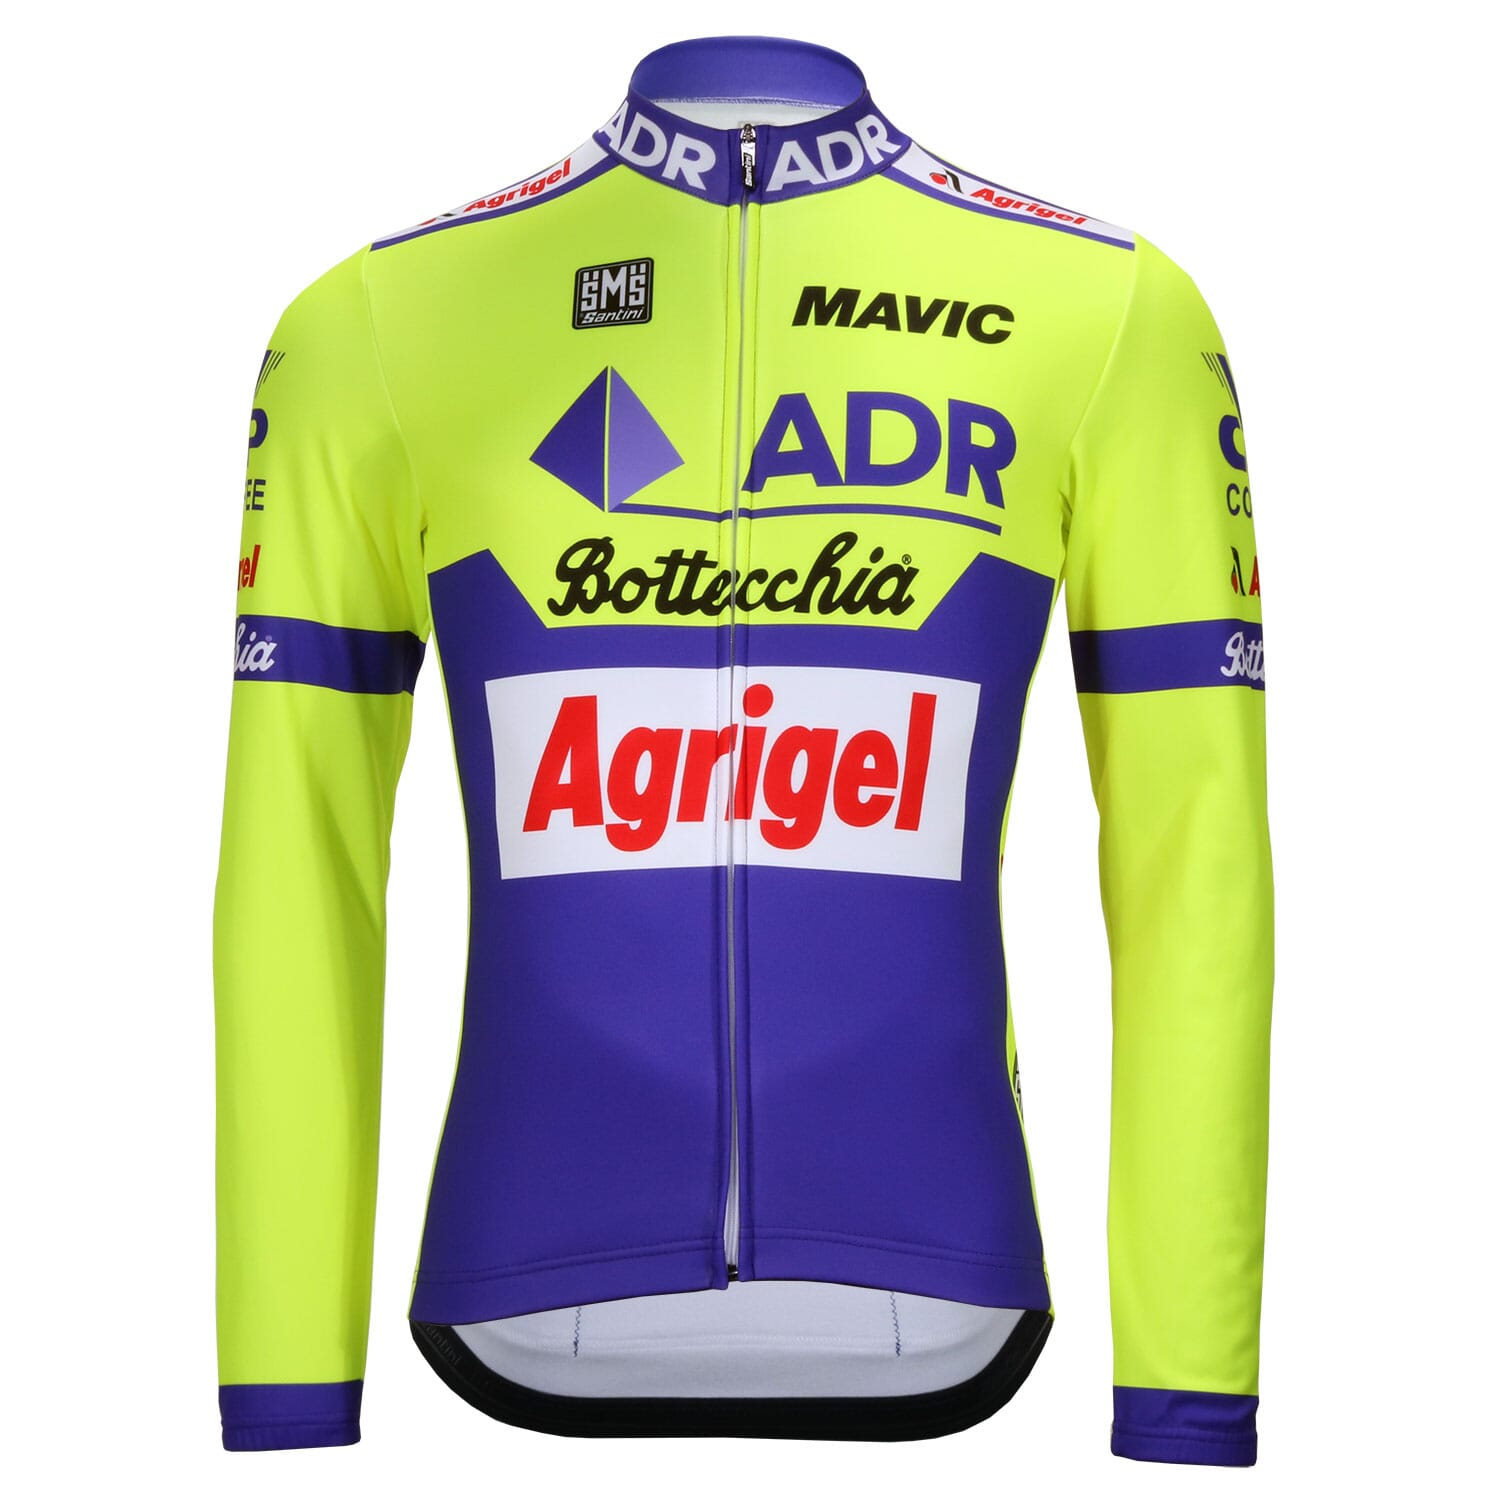 ADR/Agrigel/Bottecchia 1989 Retro Long Sleeve Jersey